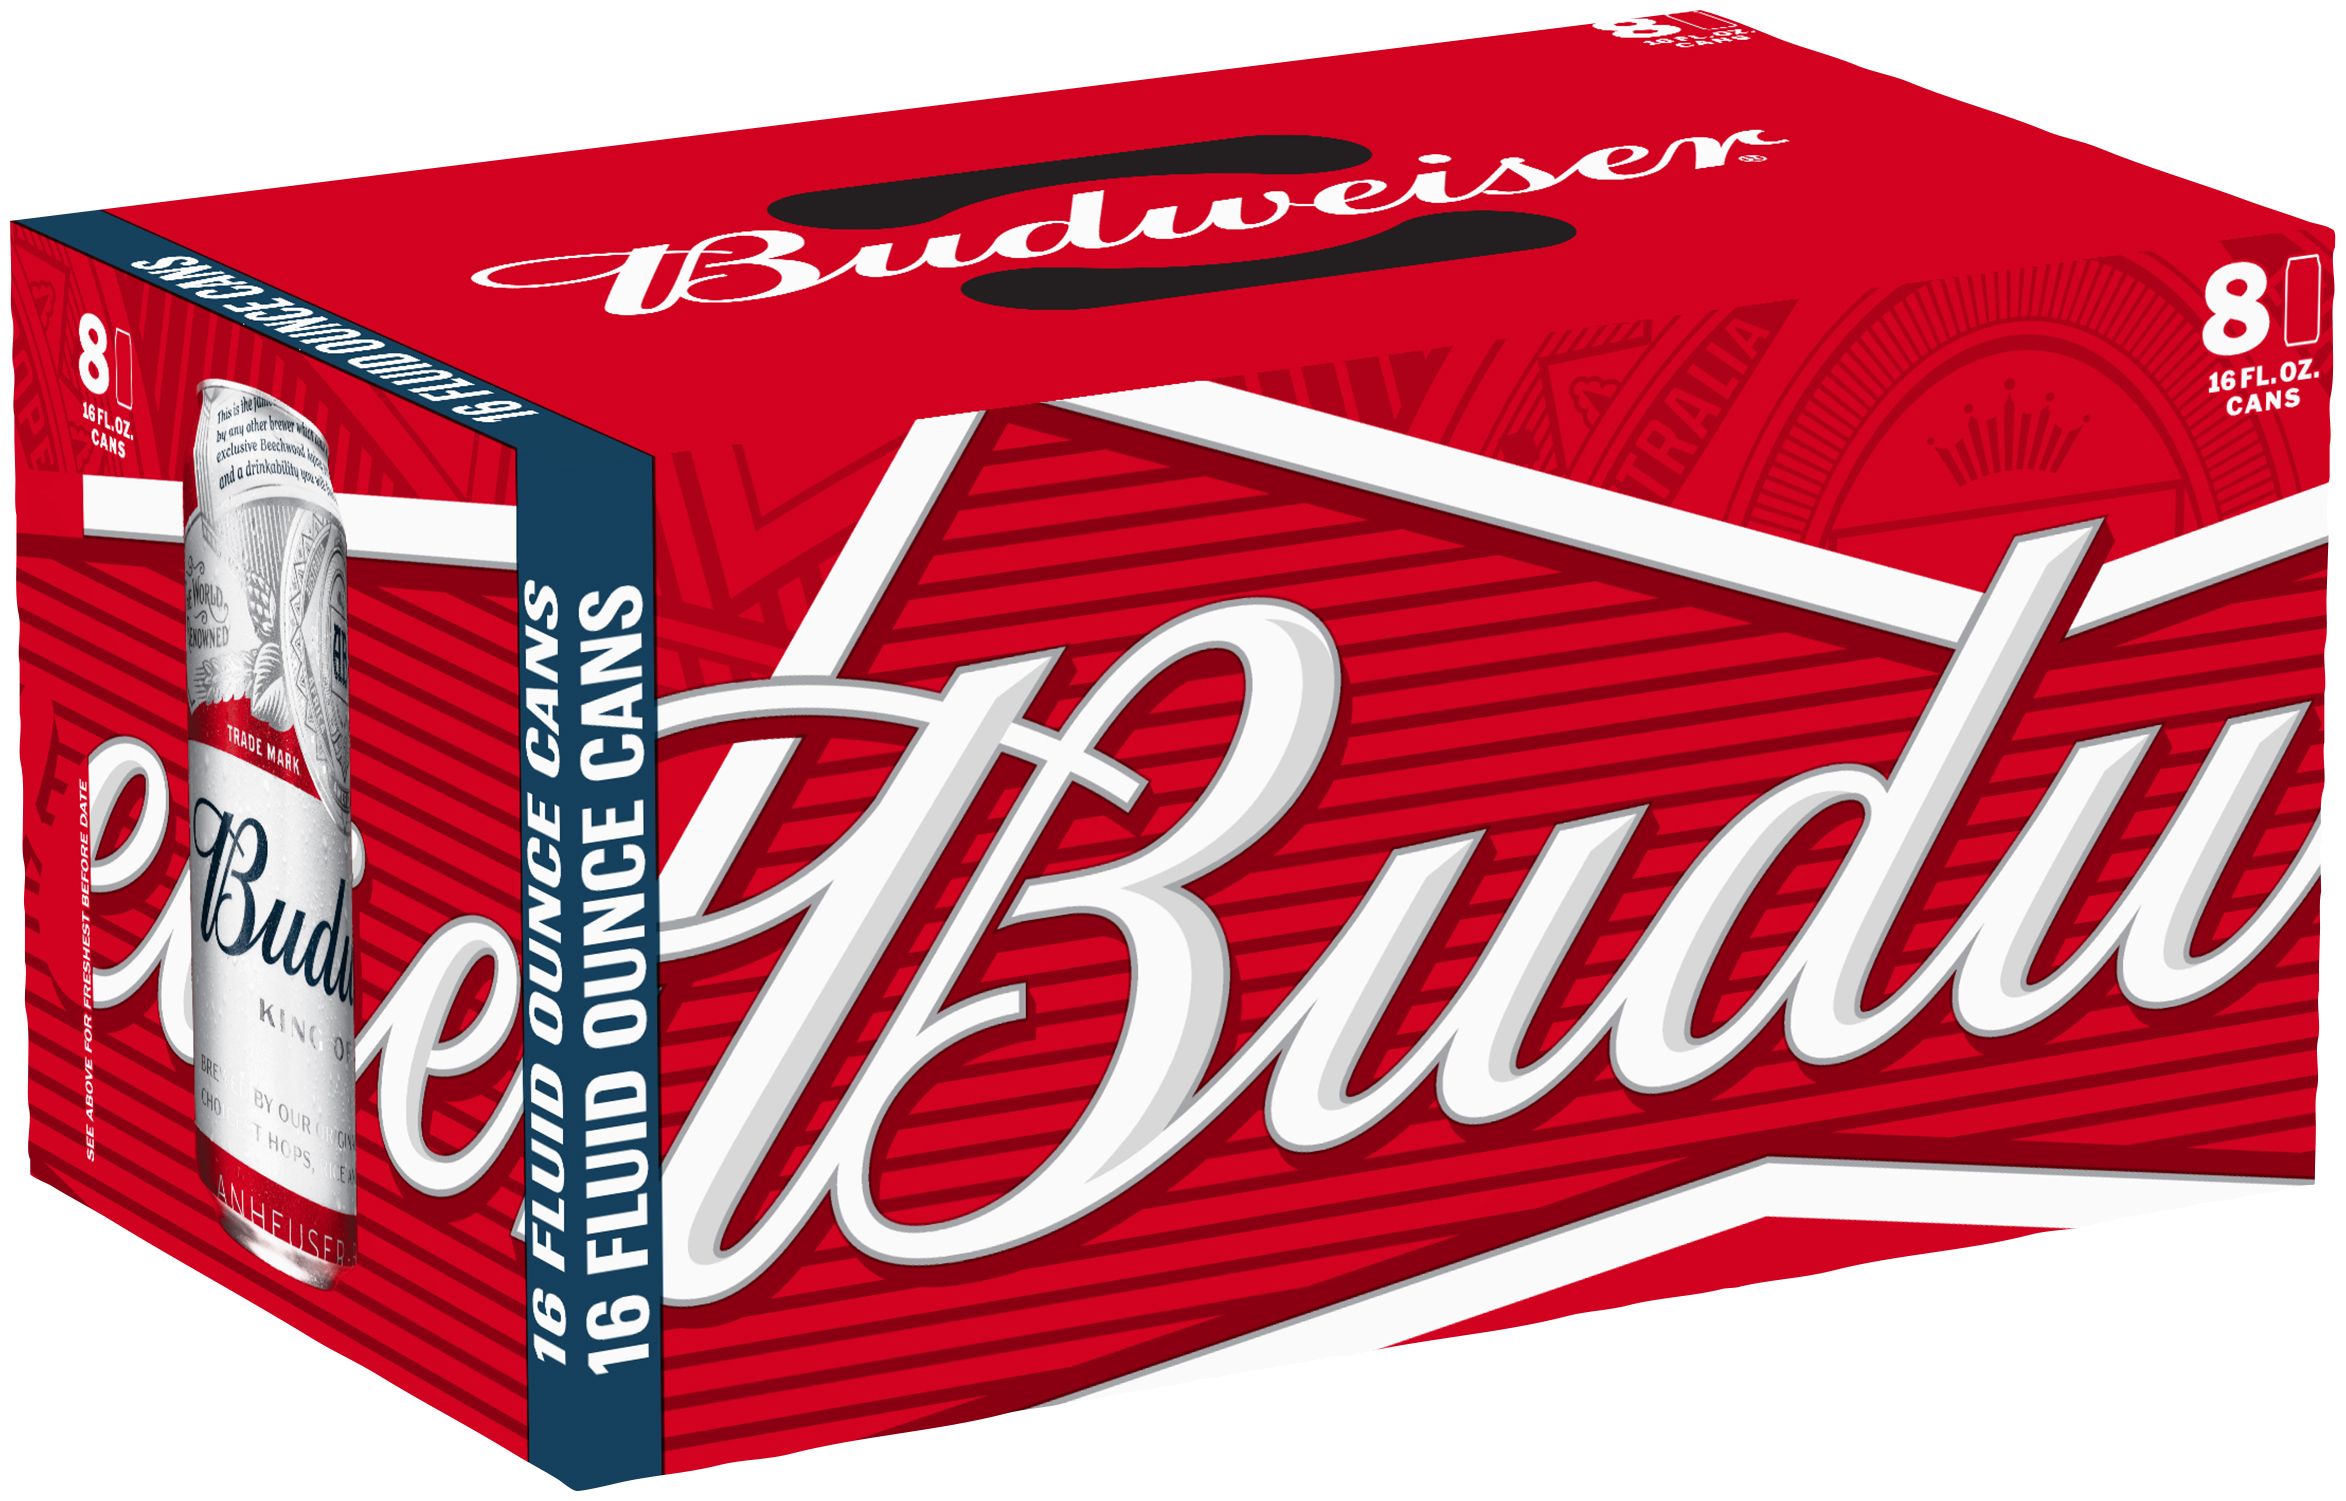 Budweiser - Beer - 16oz Can - 8 Pack